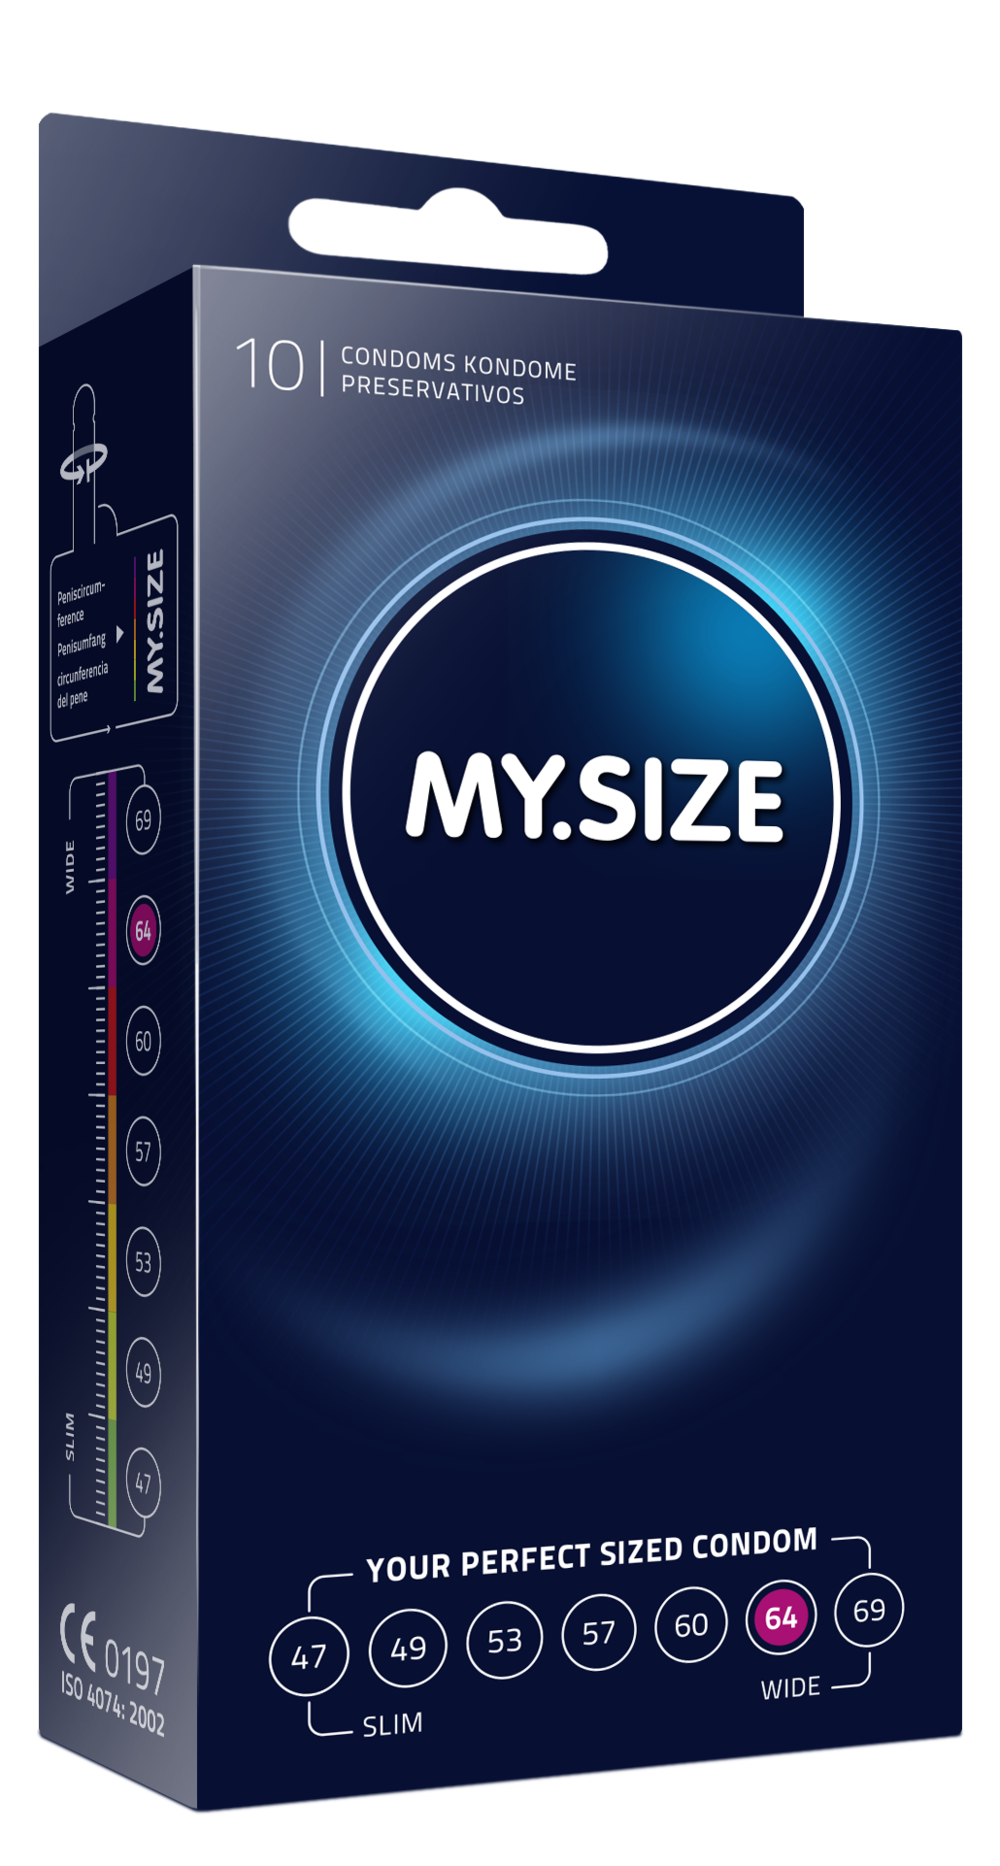 MY.SIZE condoms 3 pack size 64